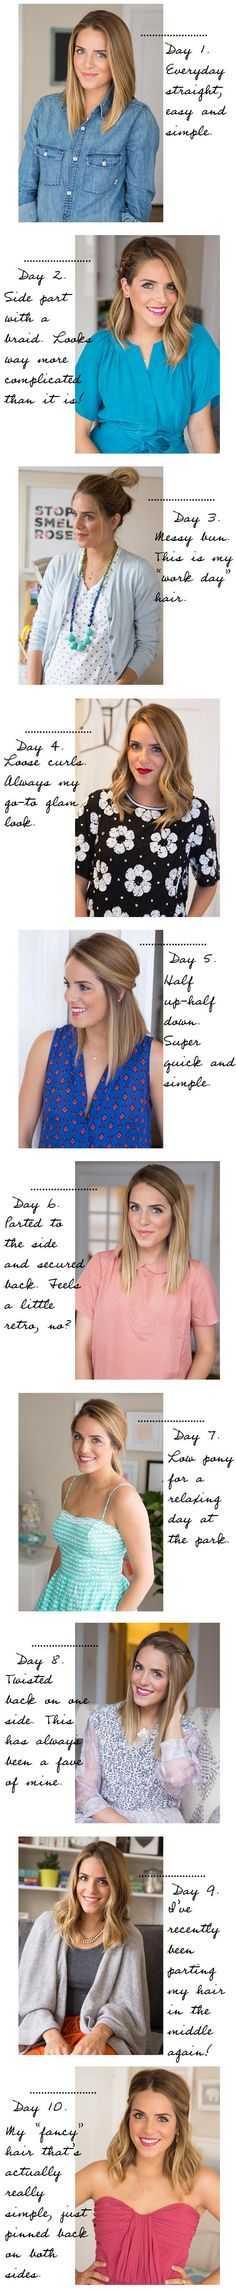 Try new hairstyles for summer - 10 super chic and pretty ways to wear your hair